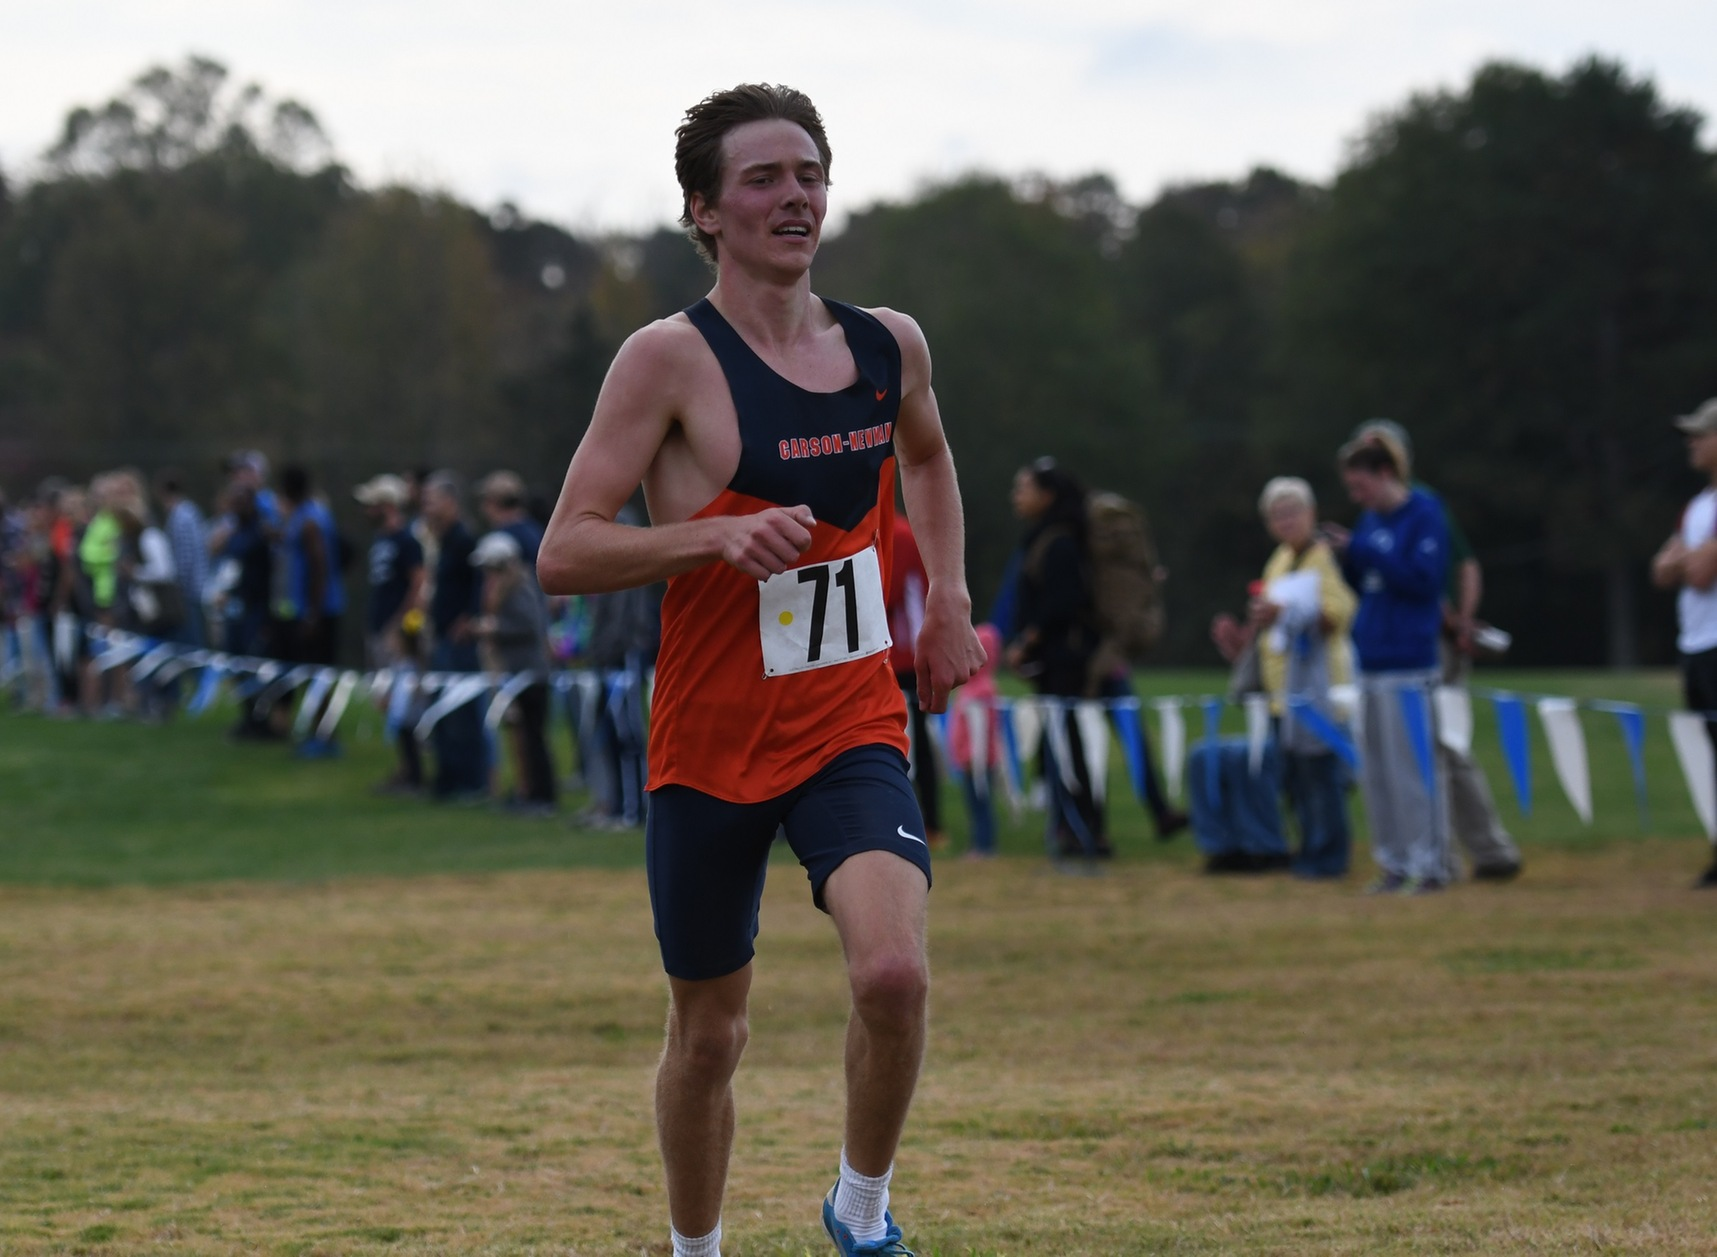 Greer advances to Nationals, men finish in 12th place while women finish in 14th